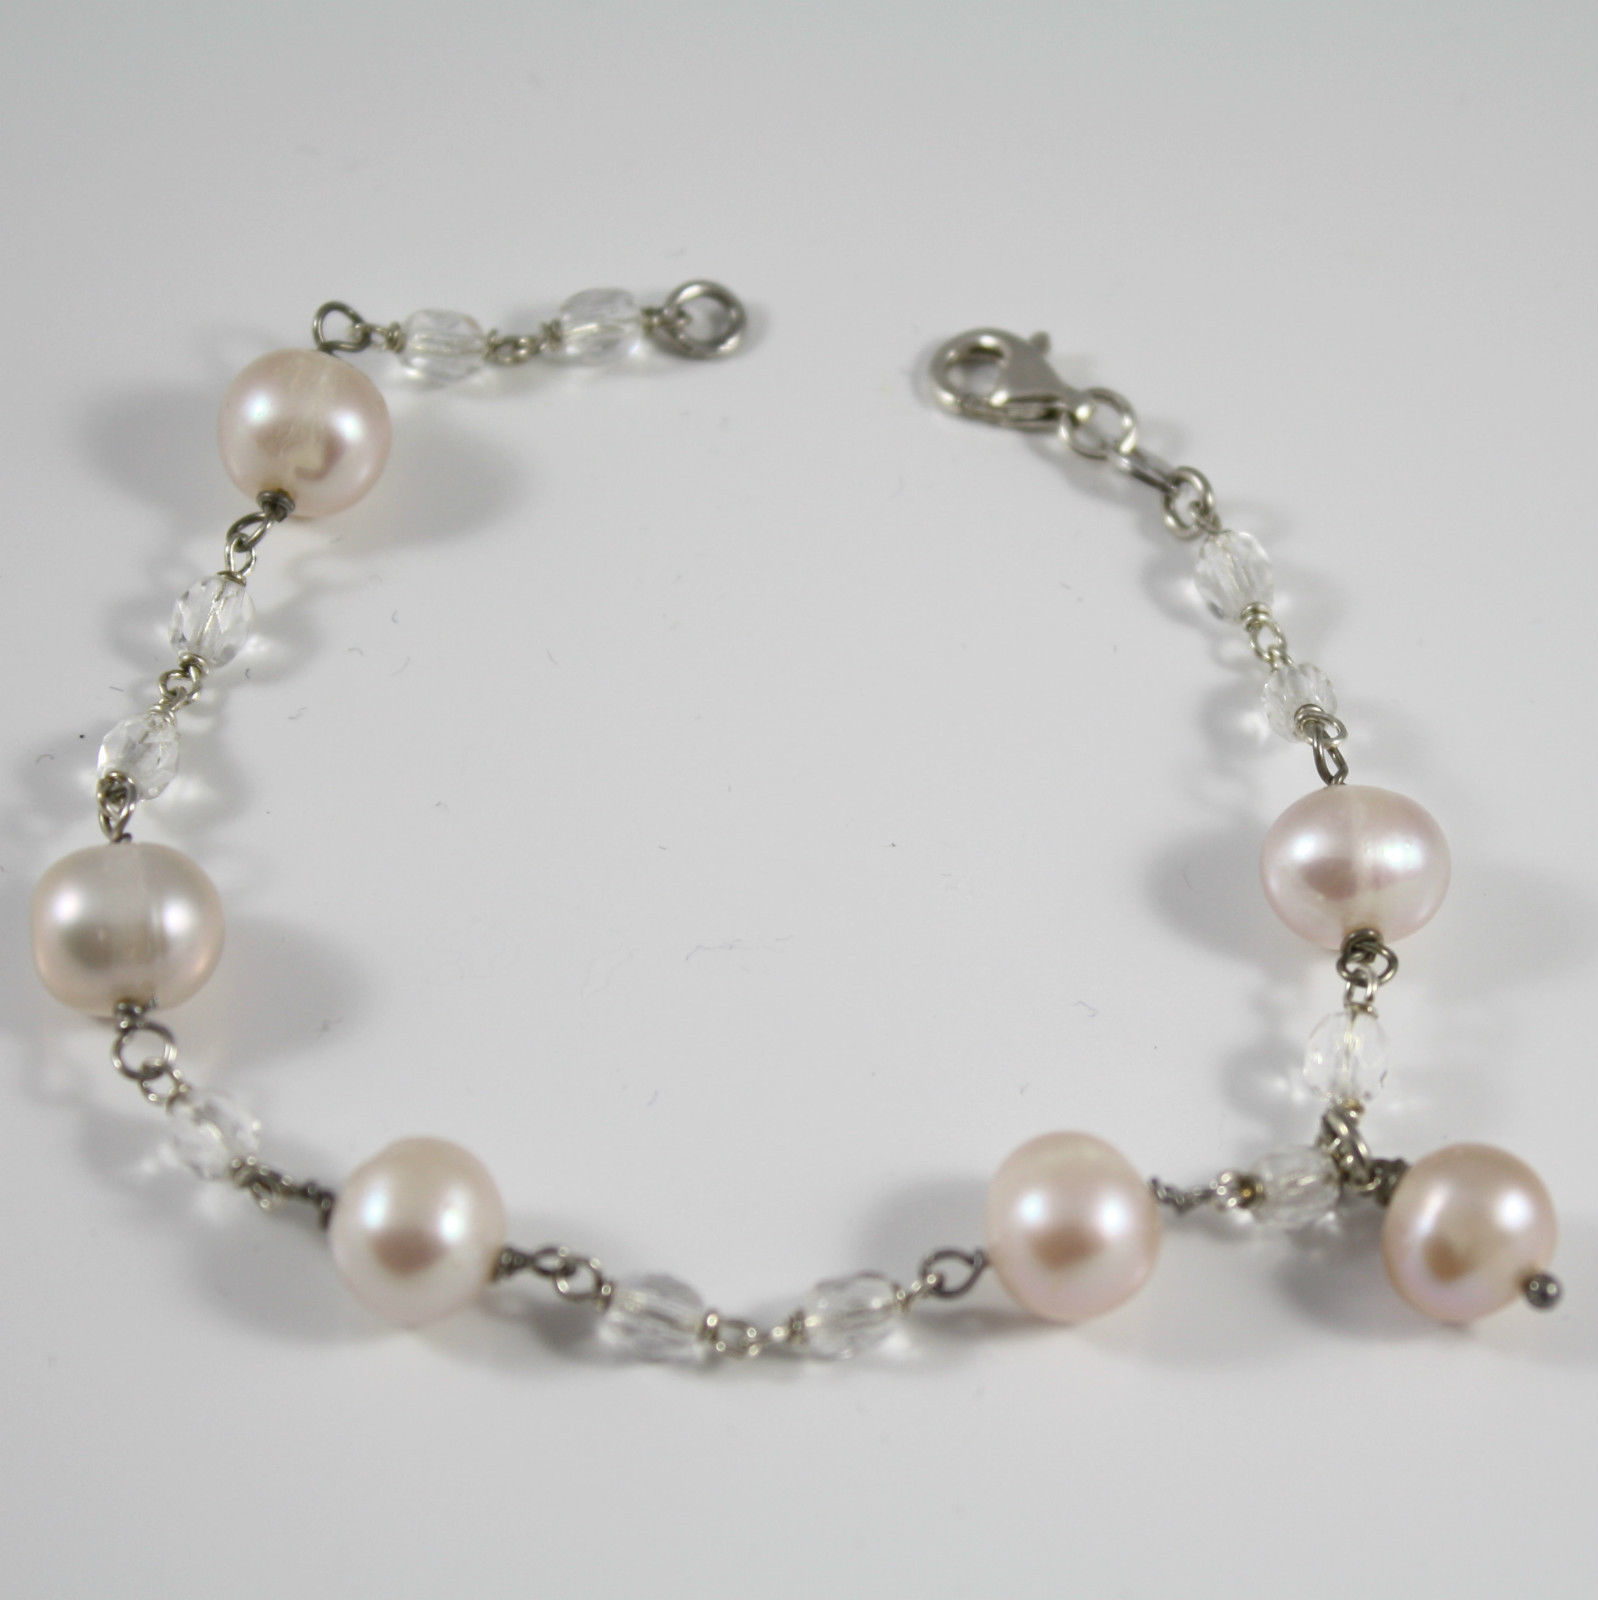 Bracelet in Sterling Silver 925 Rhodium Round Pink Pearls and Transparent Cry...